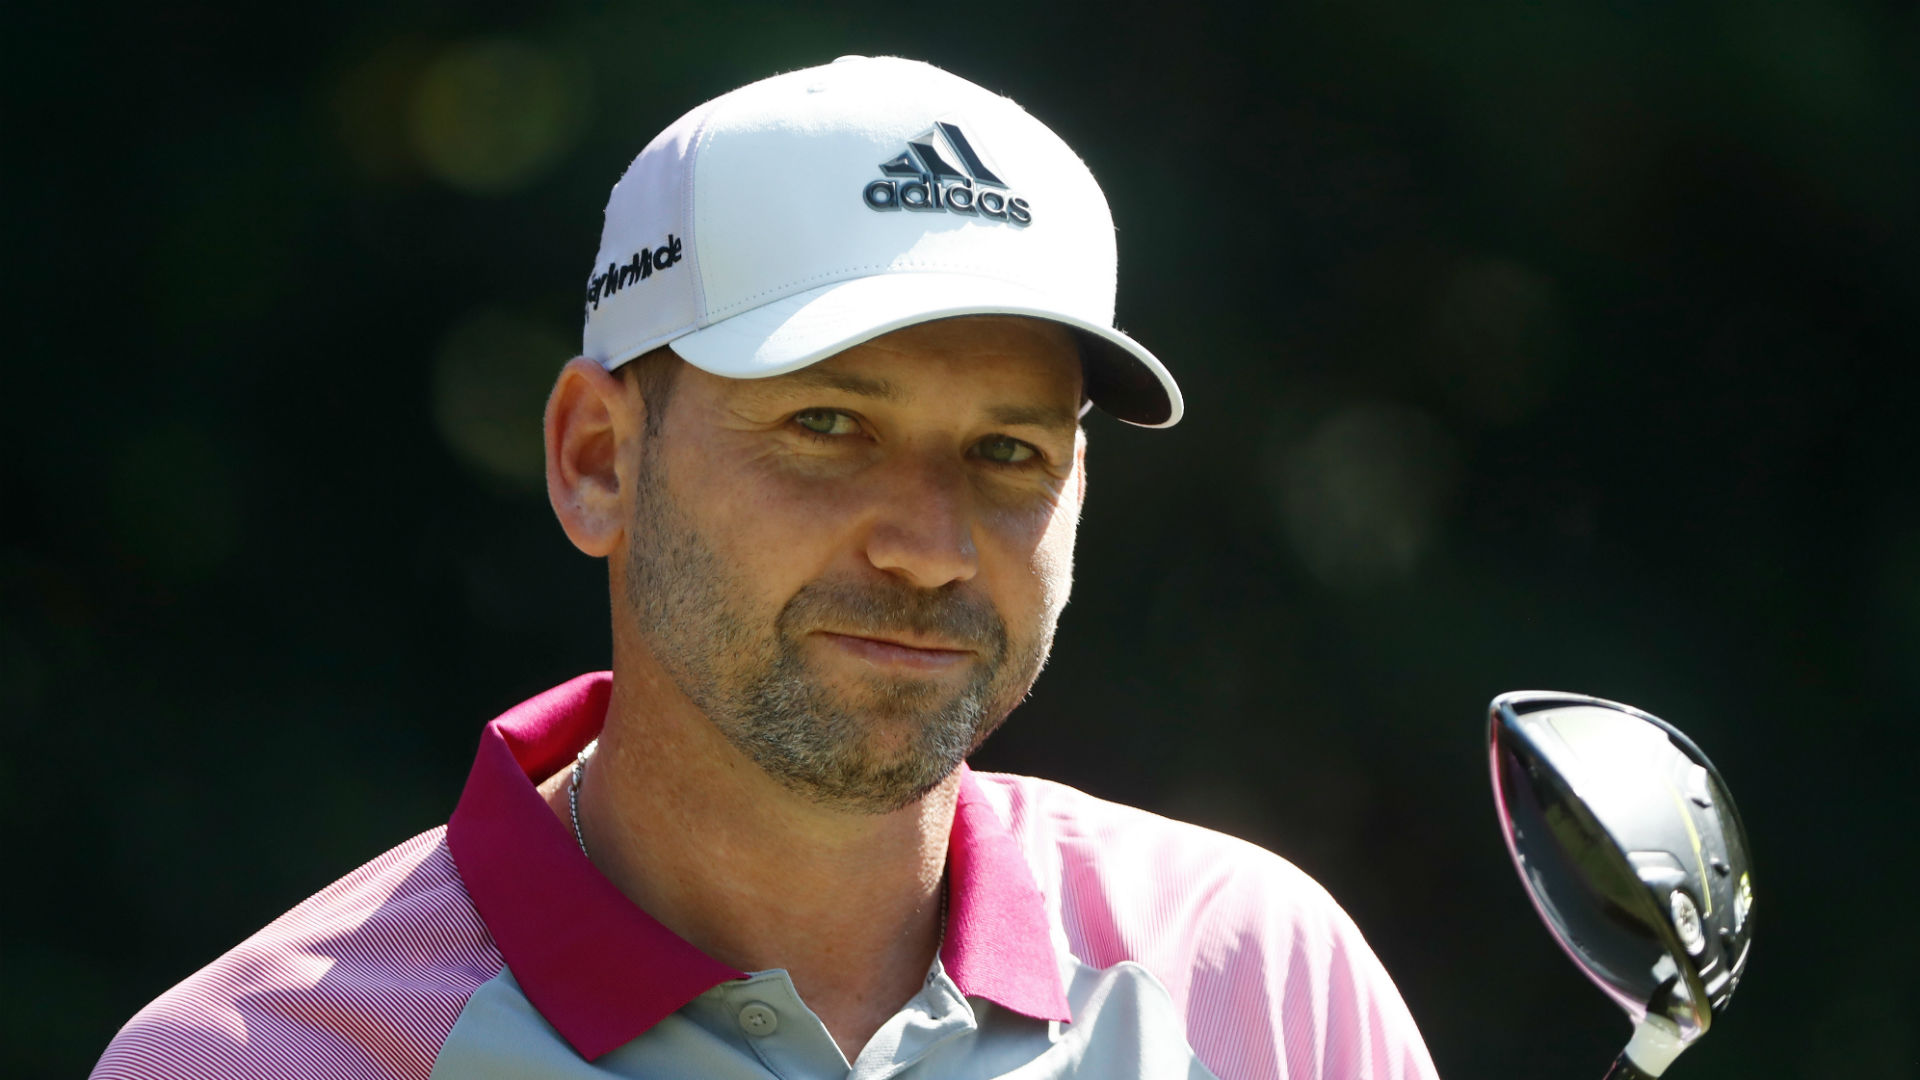 Sergio Garcia breaks putter, drains birdie with his 3-wood instead